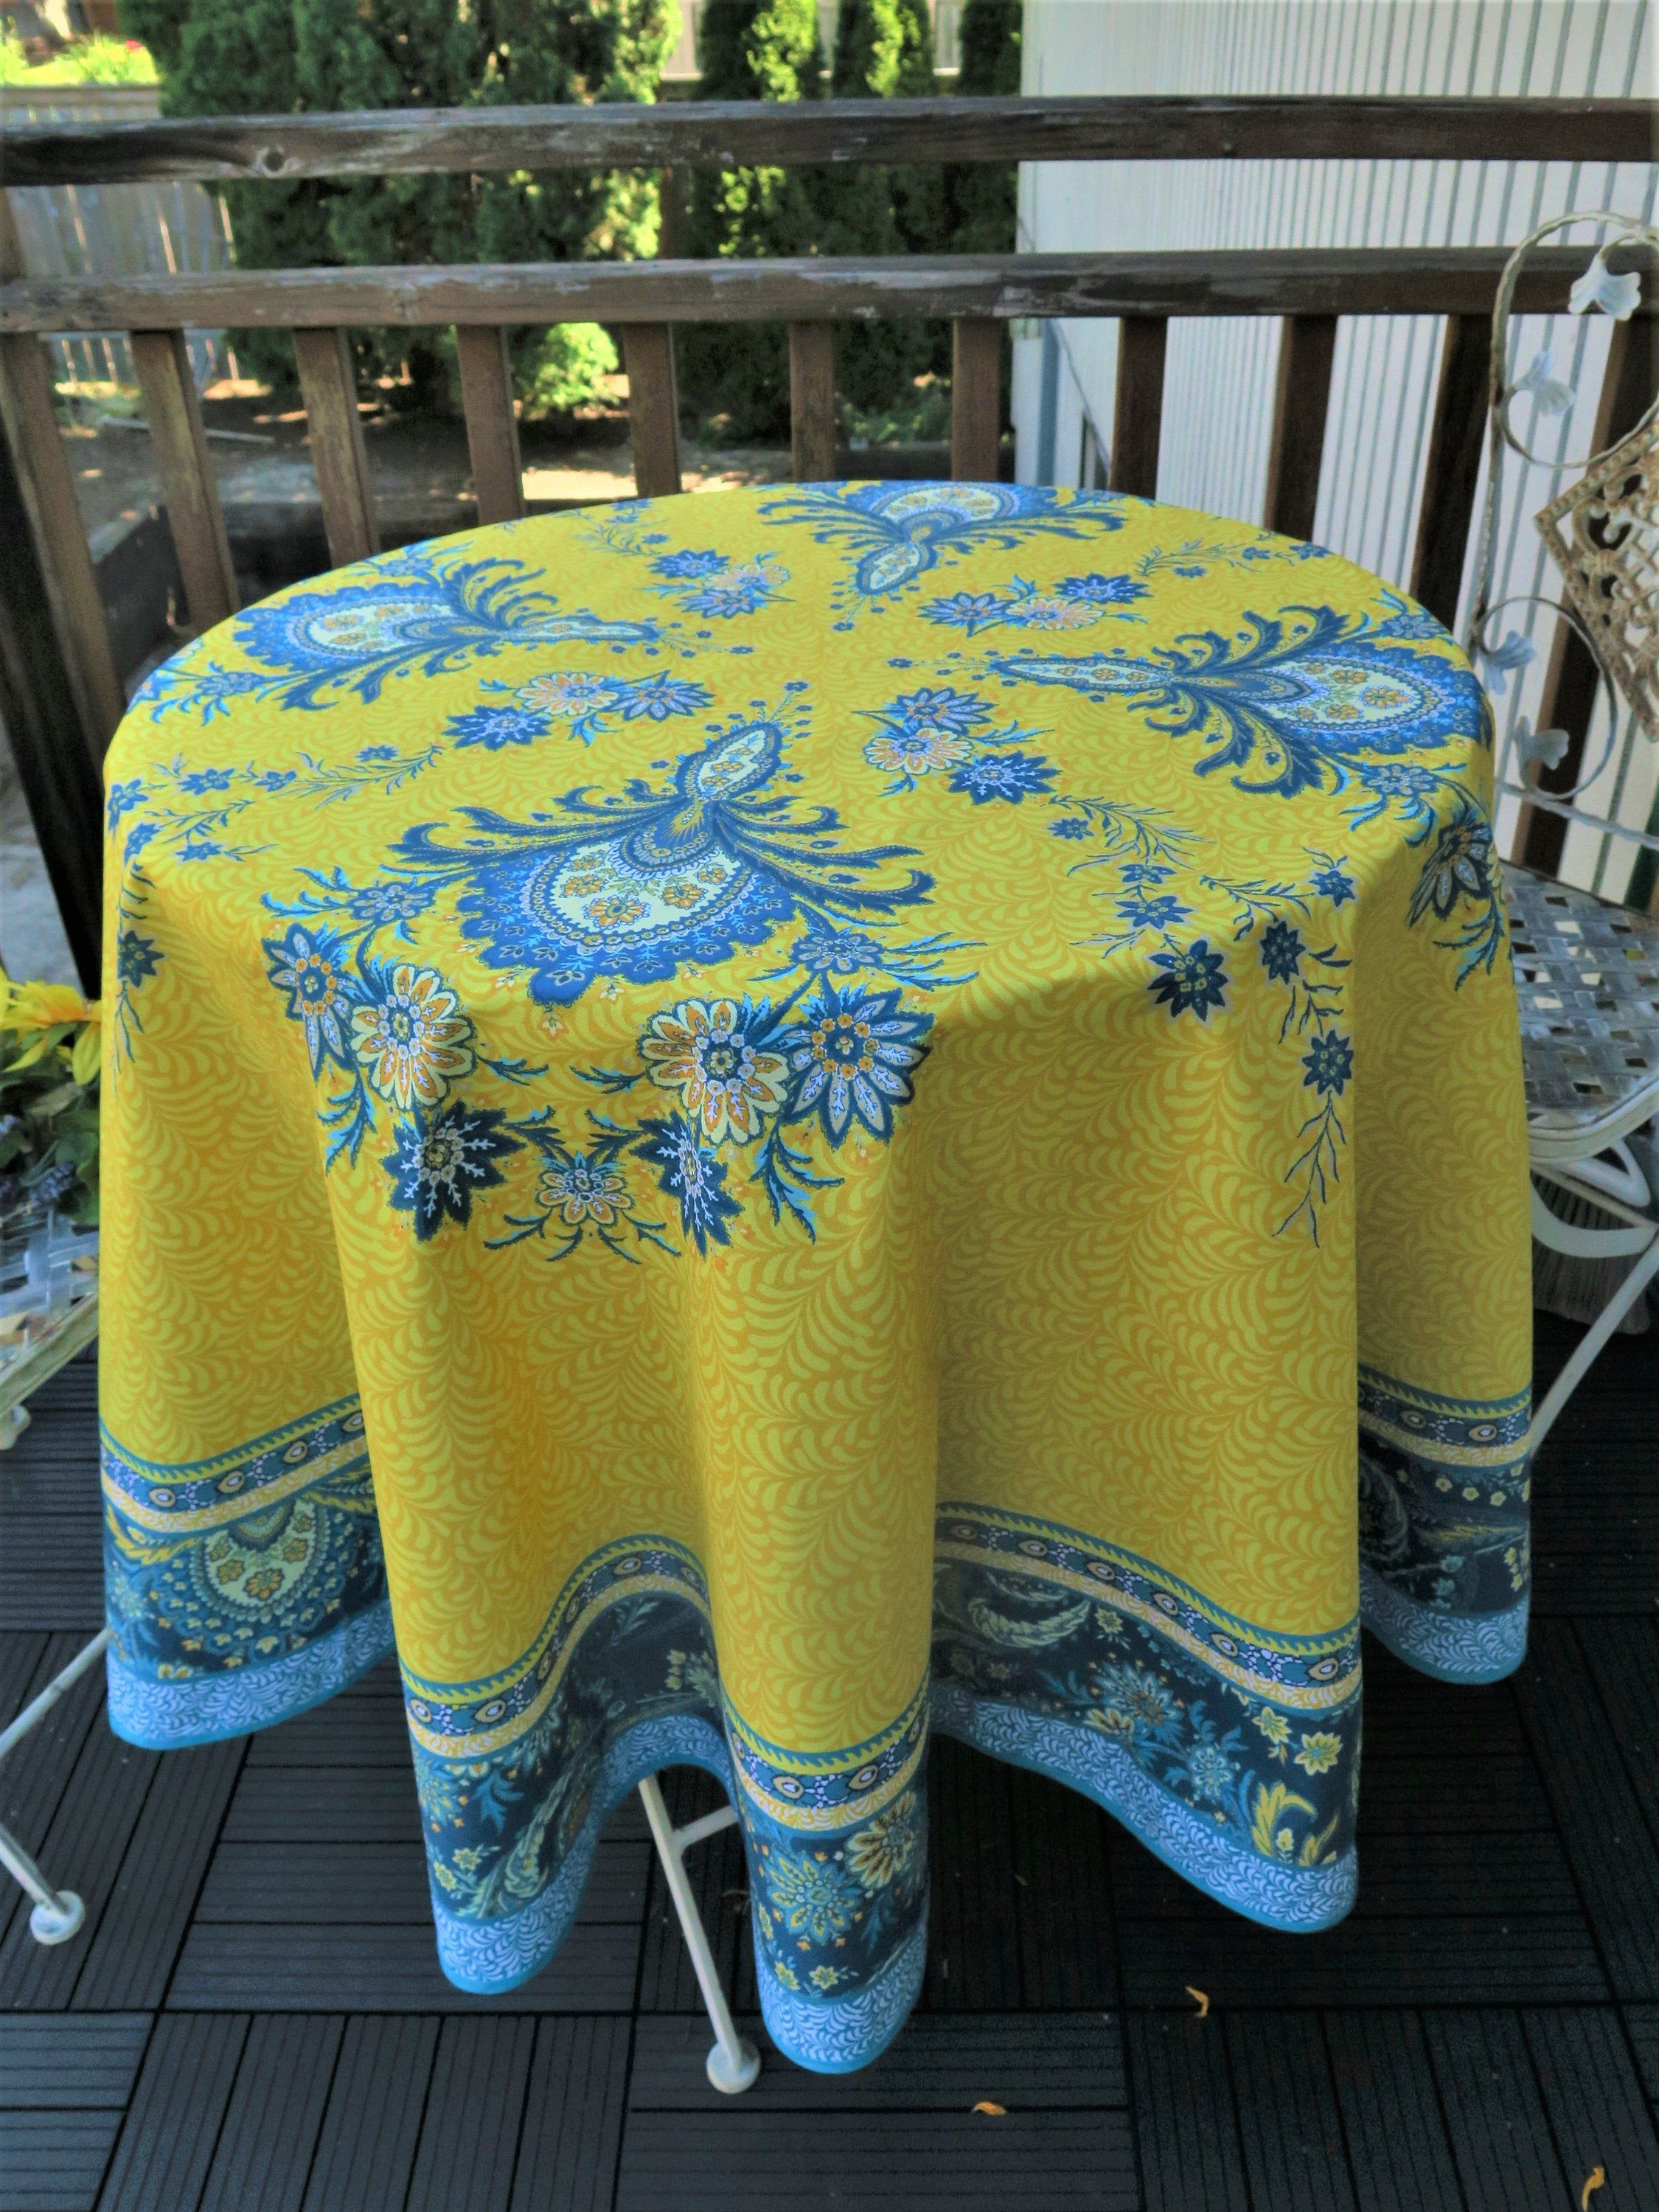 Round Cotton Table Cloth French Decor Tablecloth Indoor Outdoor Ready To Ship Floral Paisley Print Blue And Yellow Fabric Provence Decor In 2020 French Decor Provencal Decor French Fabric